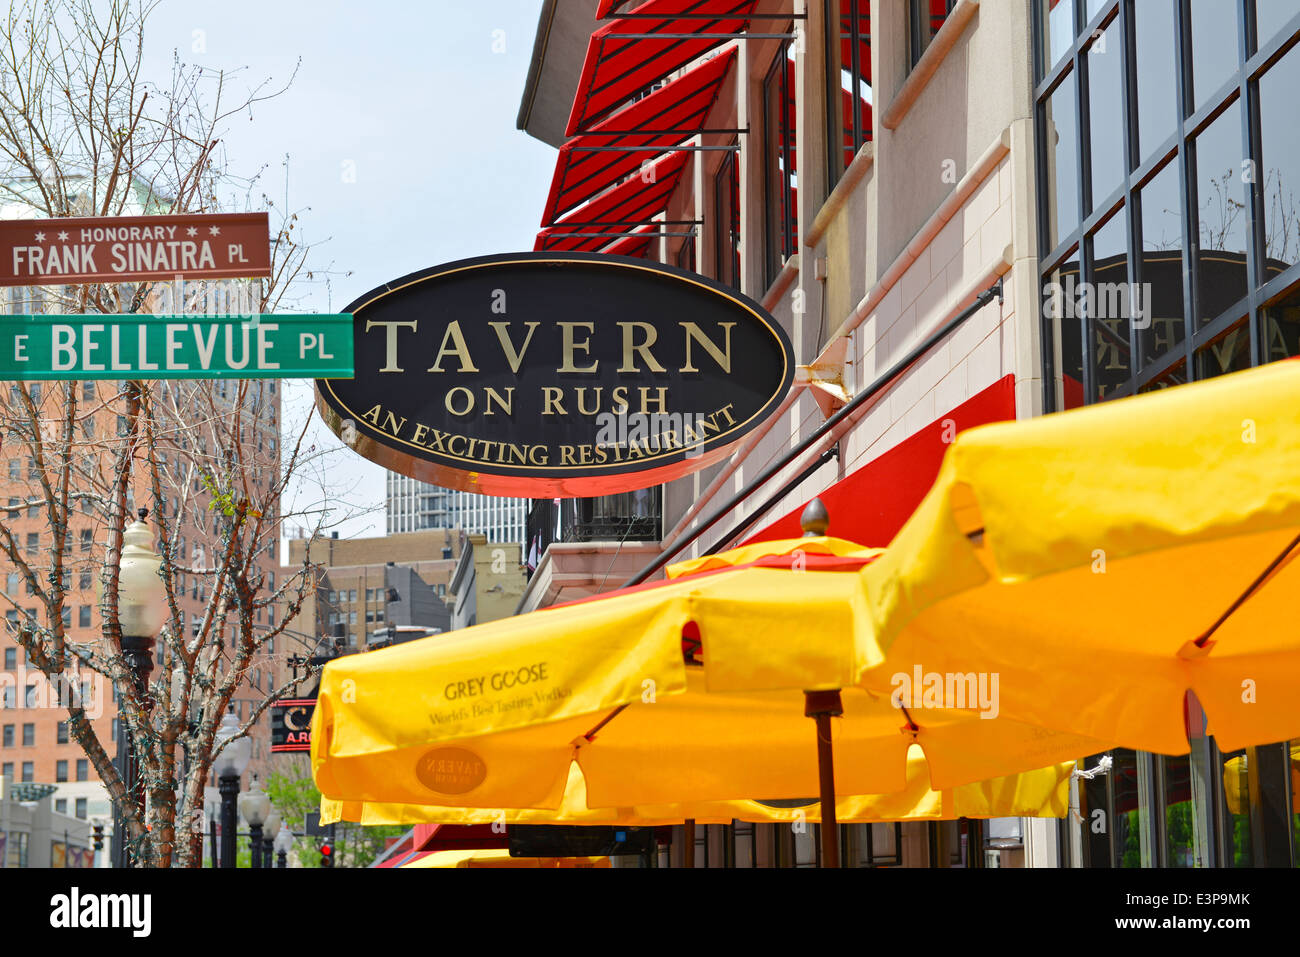 Tavern on Rush, Sign, Restaurant on Rush St. and Bellevue Pl, Chicago, Illinois - Stock Image